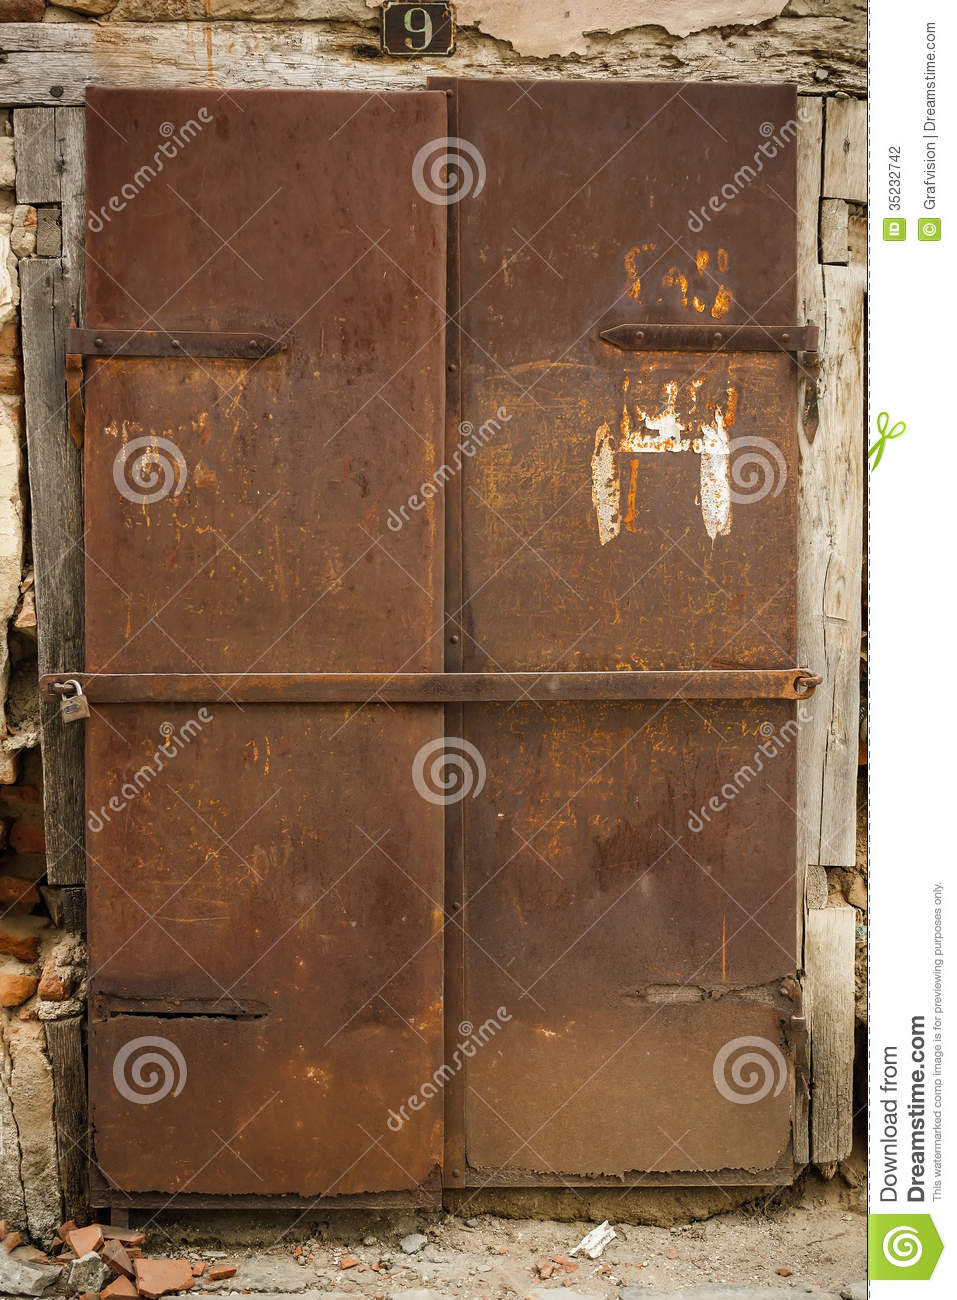 Rusty Door old rusty metal door stock photography - image: 35232742